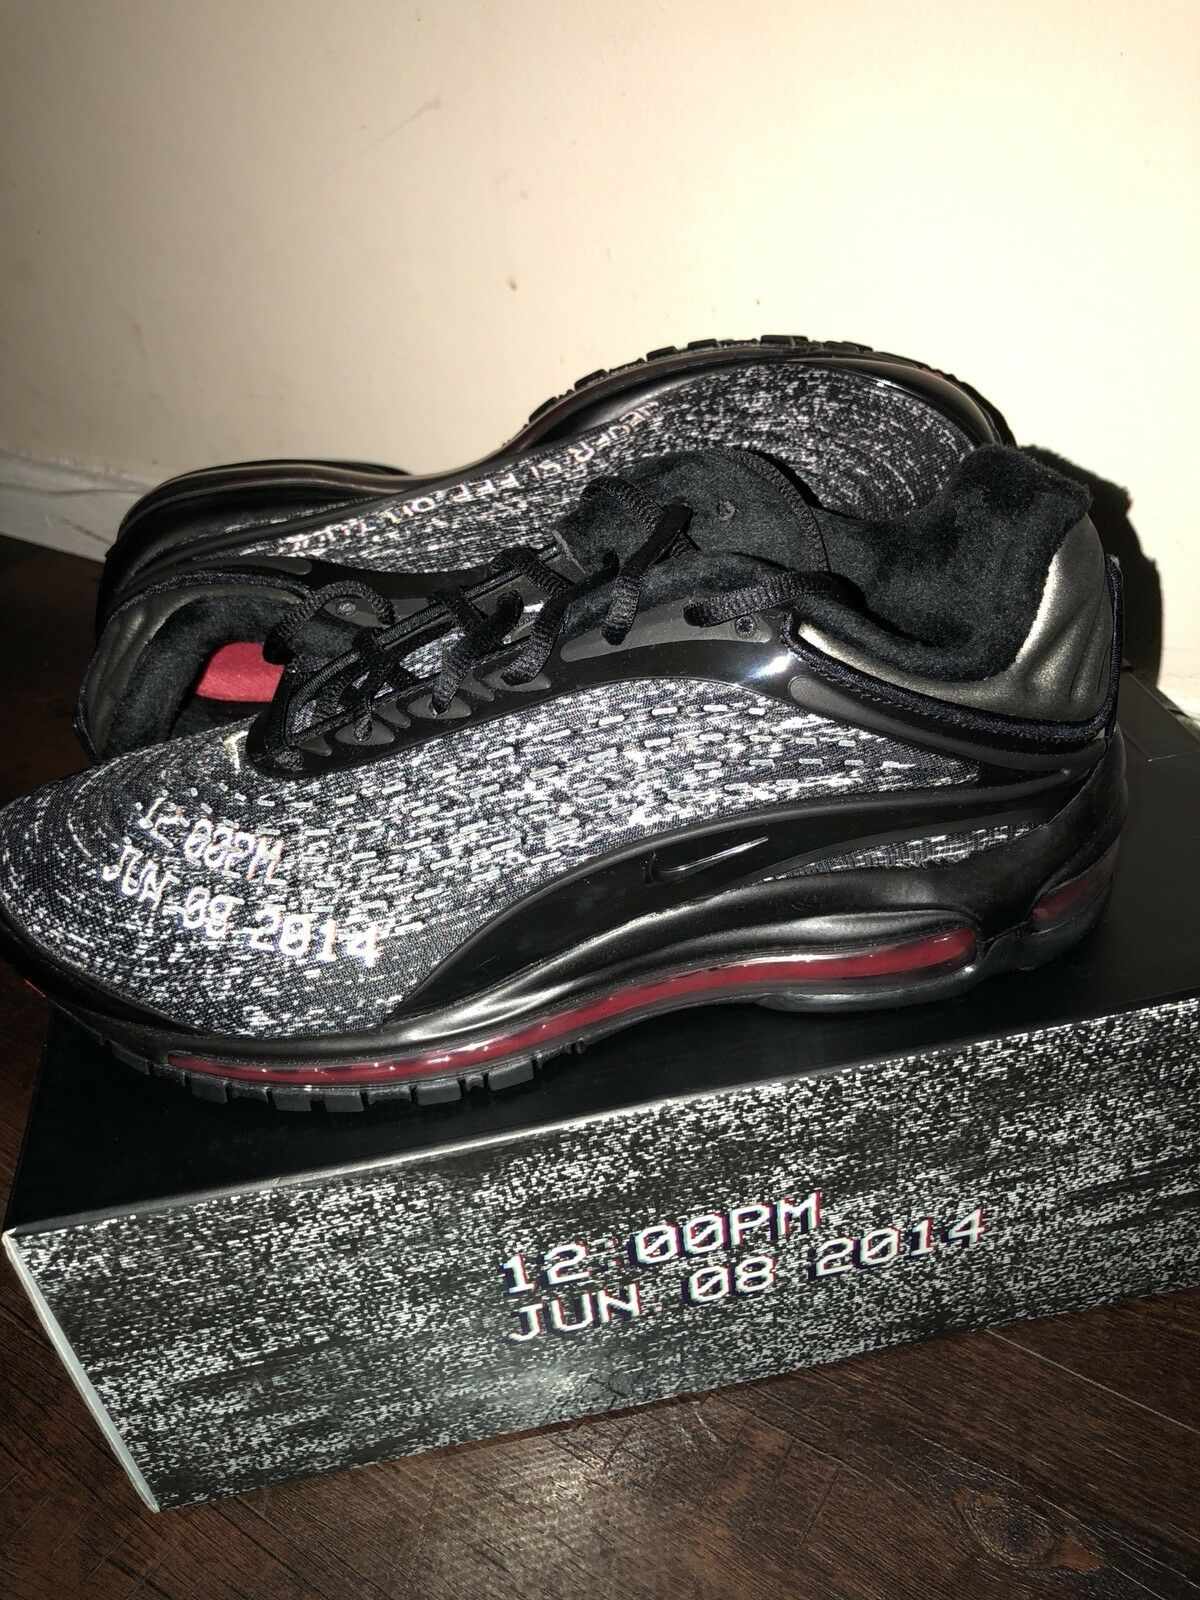 Nike X Skepta Air Max Deluxe Deluxe Deluxe SK Never Sleep On Tour UK Size 8 126163